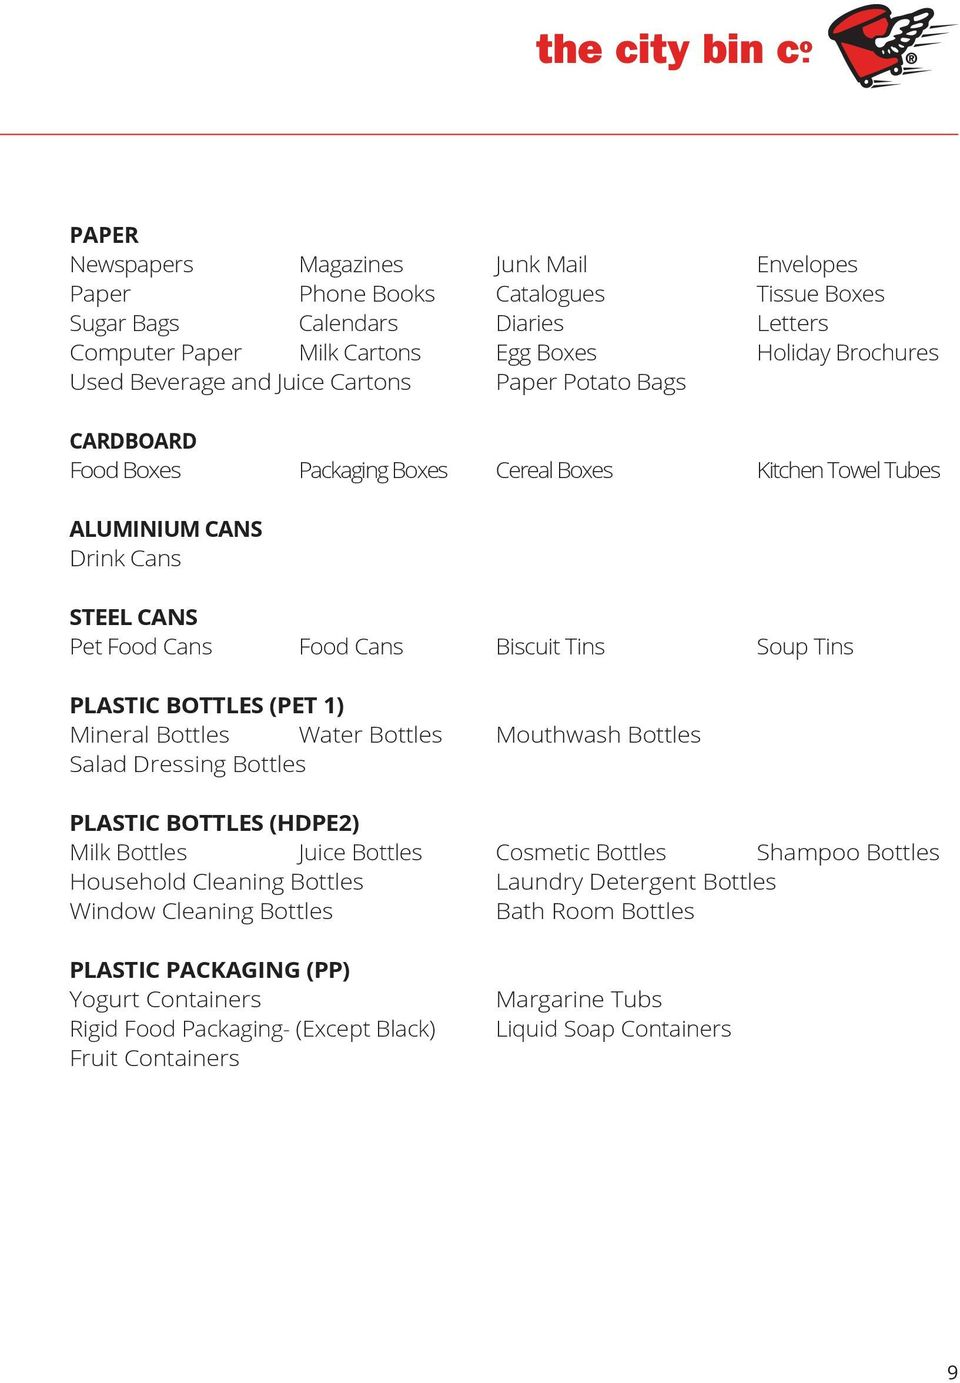 BOTTLES (PET 1) Mineral Bottles Water Bottles Mouthwash Bottles Salad Dressing Bottles PLASTIC BOTTLES (HDPE2) Milk Bottles Juice Bottles Cosmetic Bottles Shampoo Bottles Household Cleaning Bottles